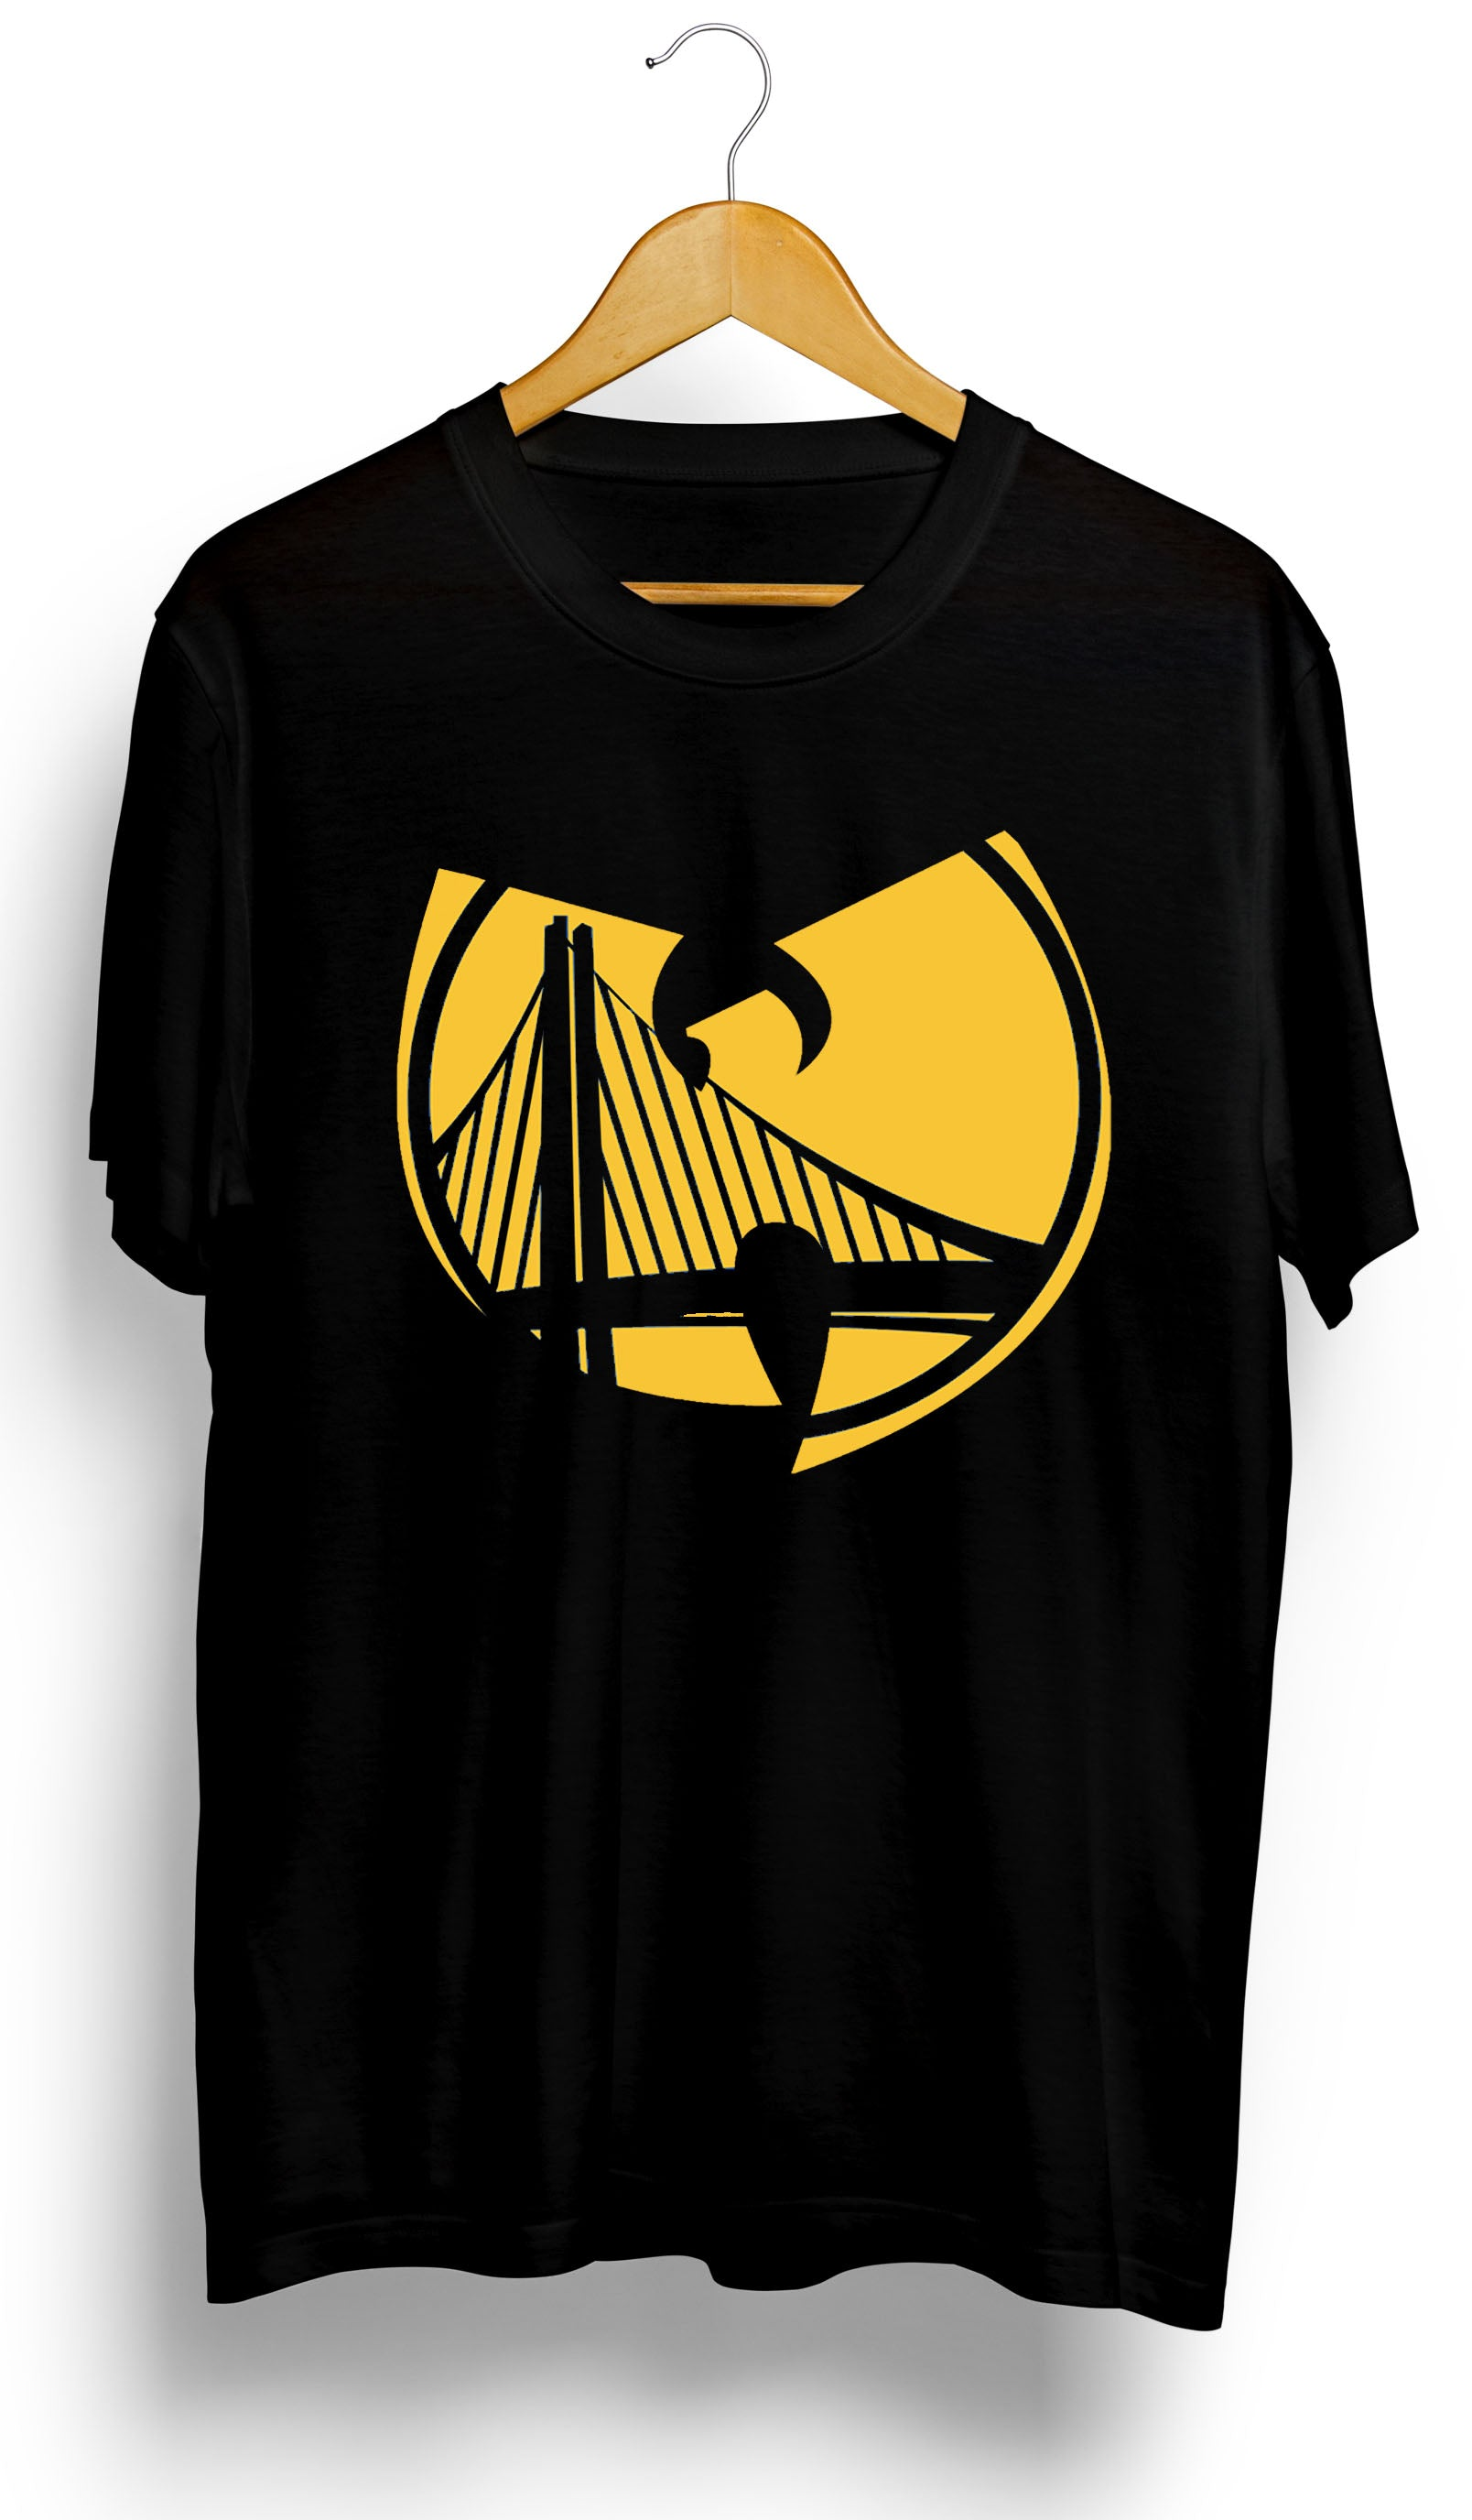 Golden State Warriors | Wu Tang T-Shirt - Ourt